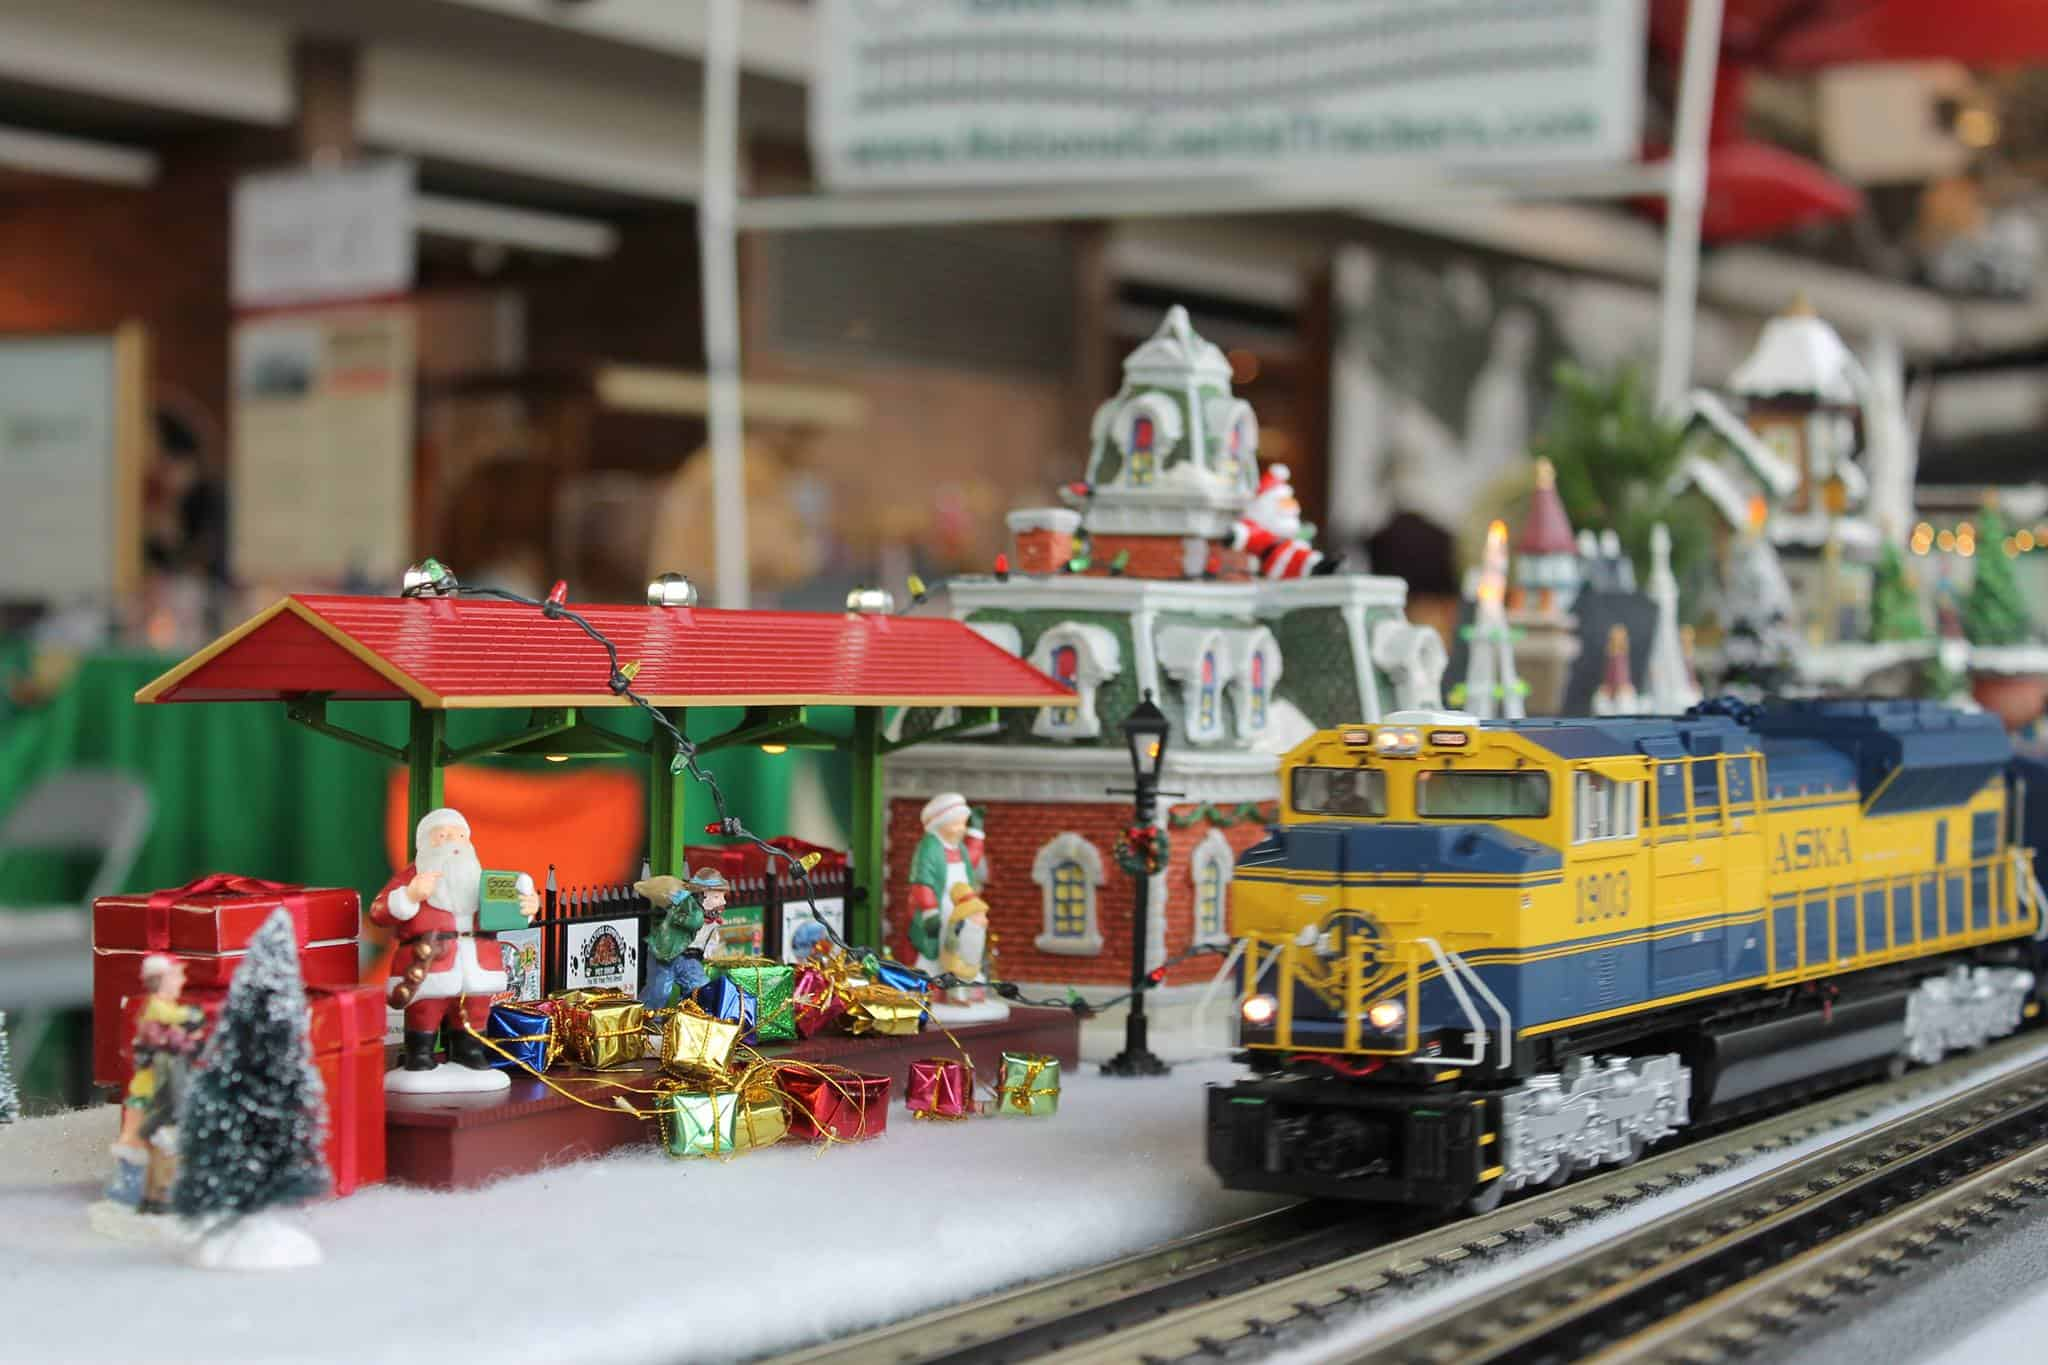 Holiday Trains and Planes at the College Park Aviation Museum